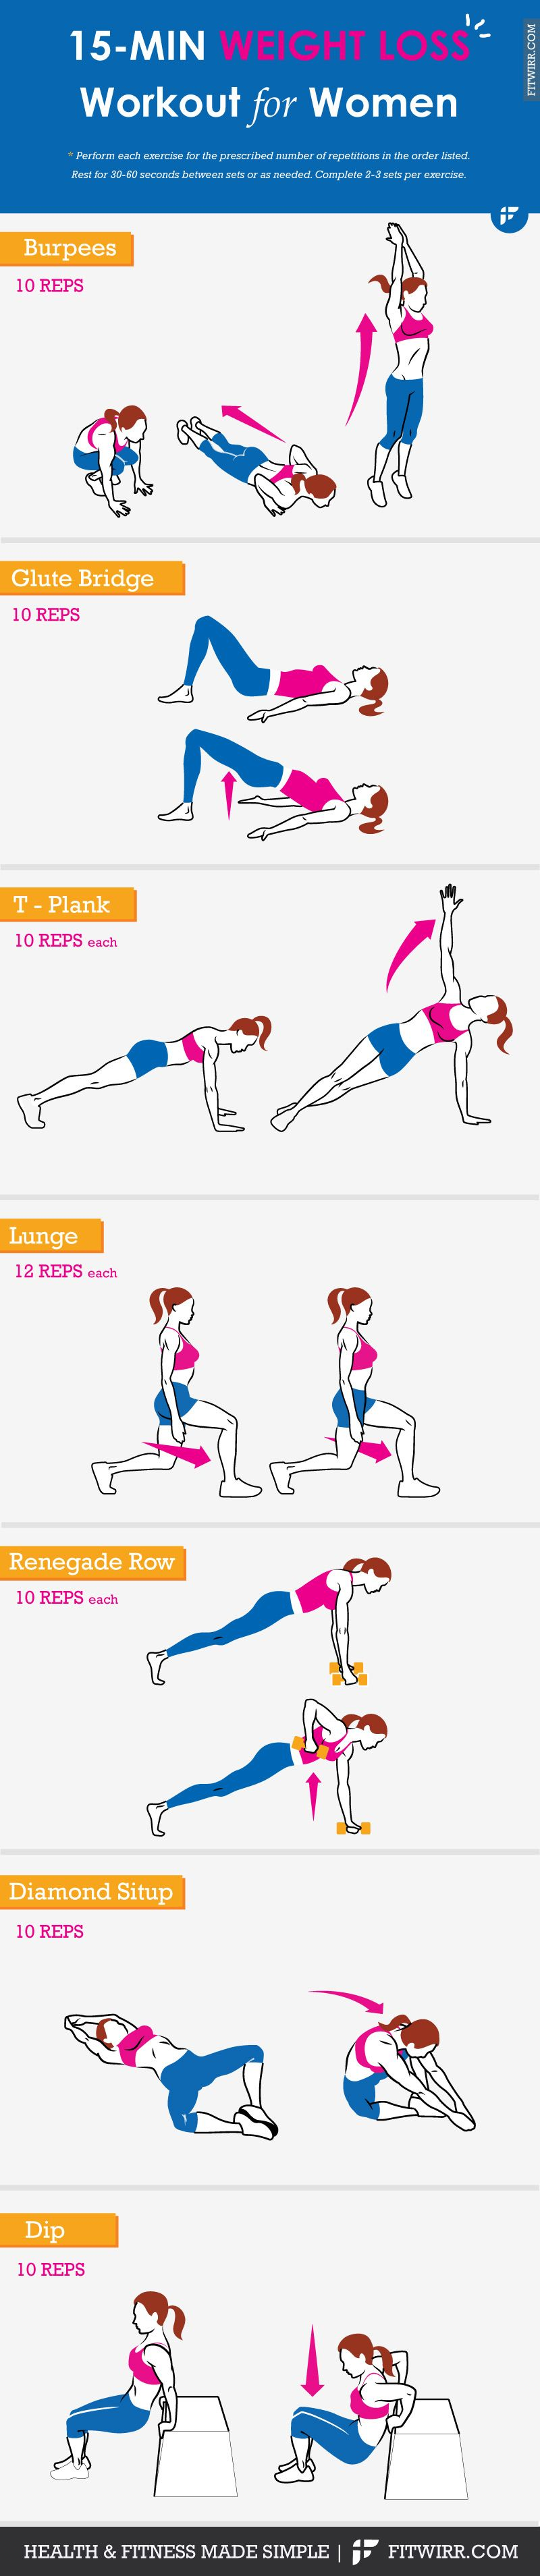 Best Exercises for Weight Loss  Minute Weight Loss Workout